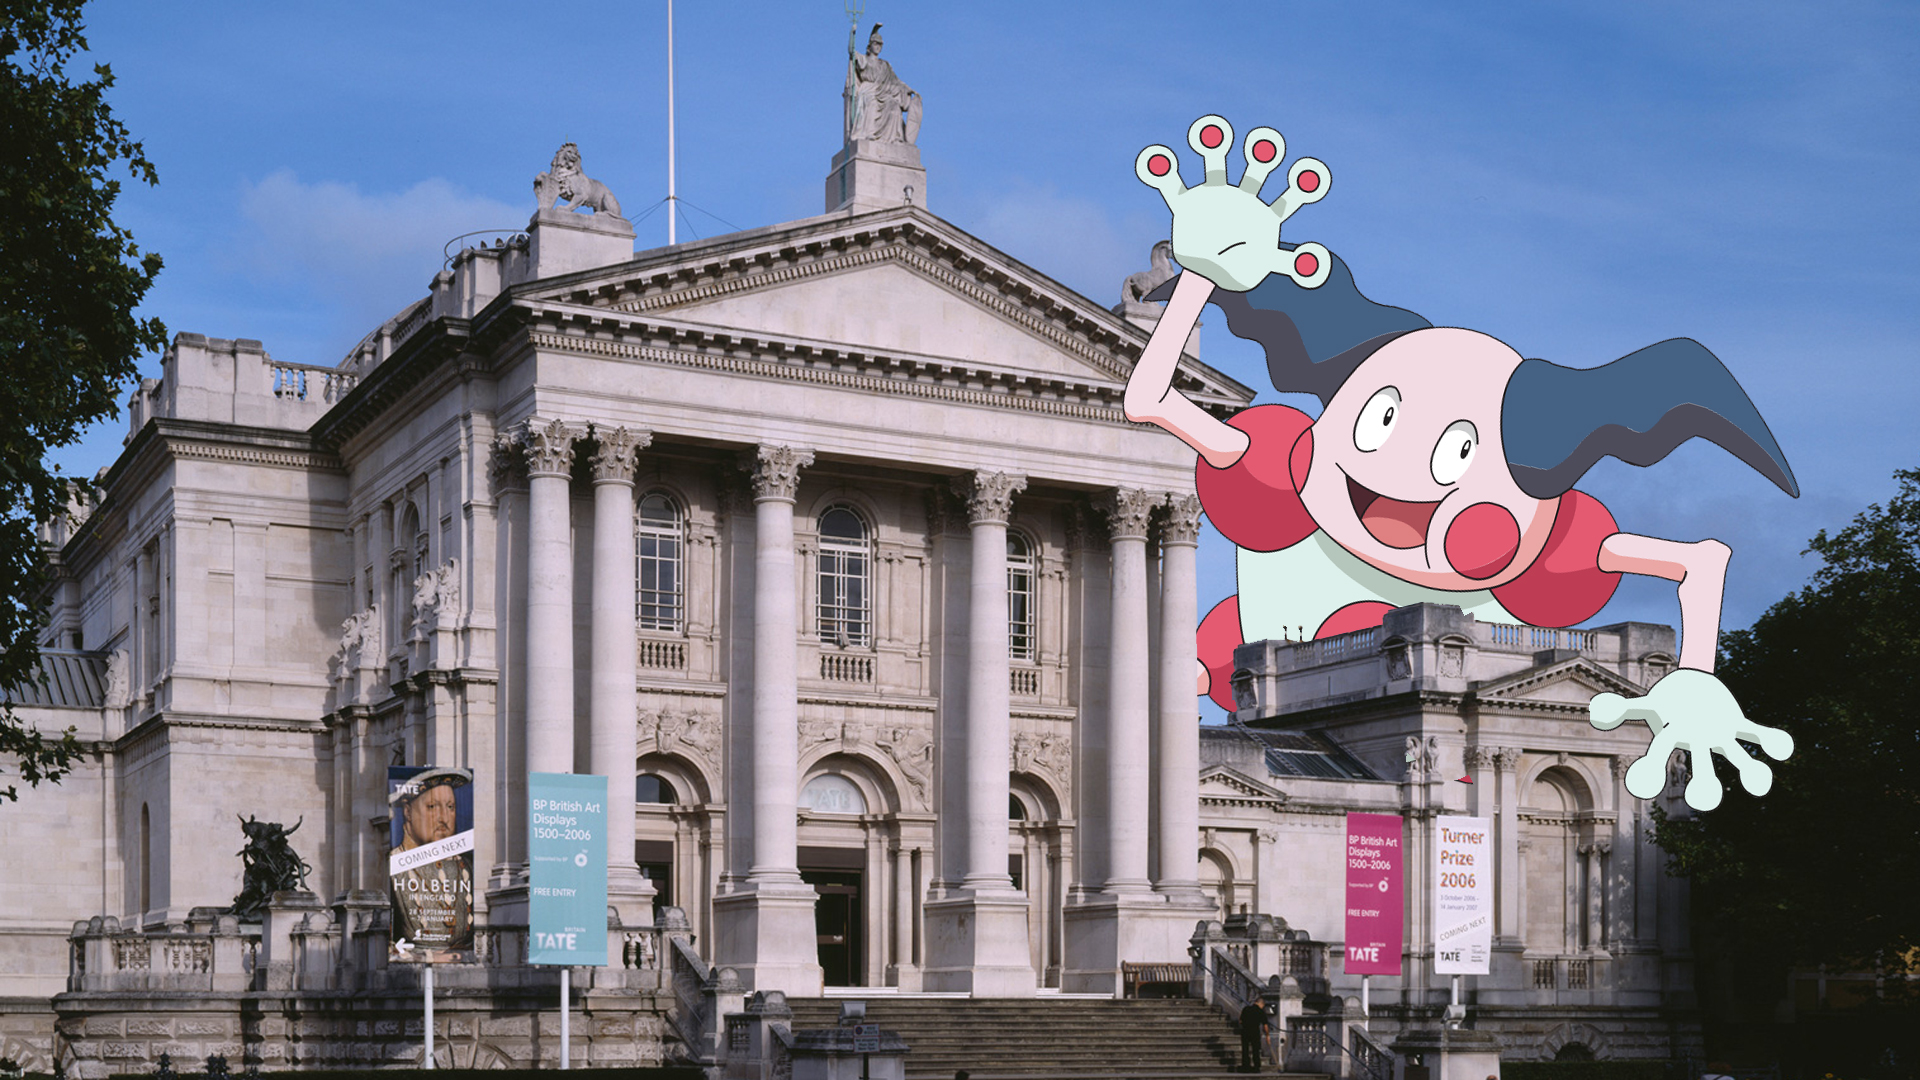 Best places to play Pokémon Go in London